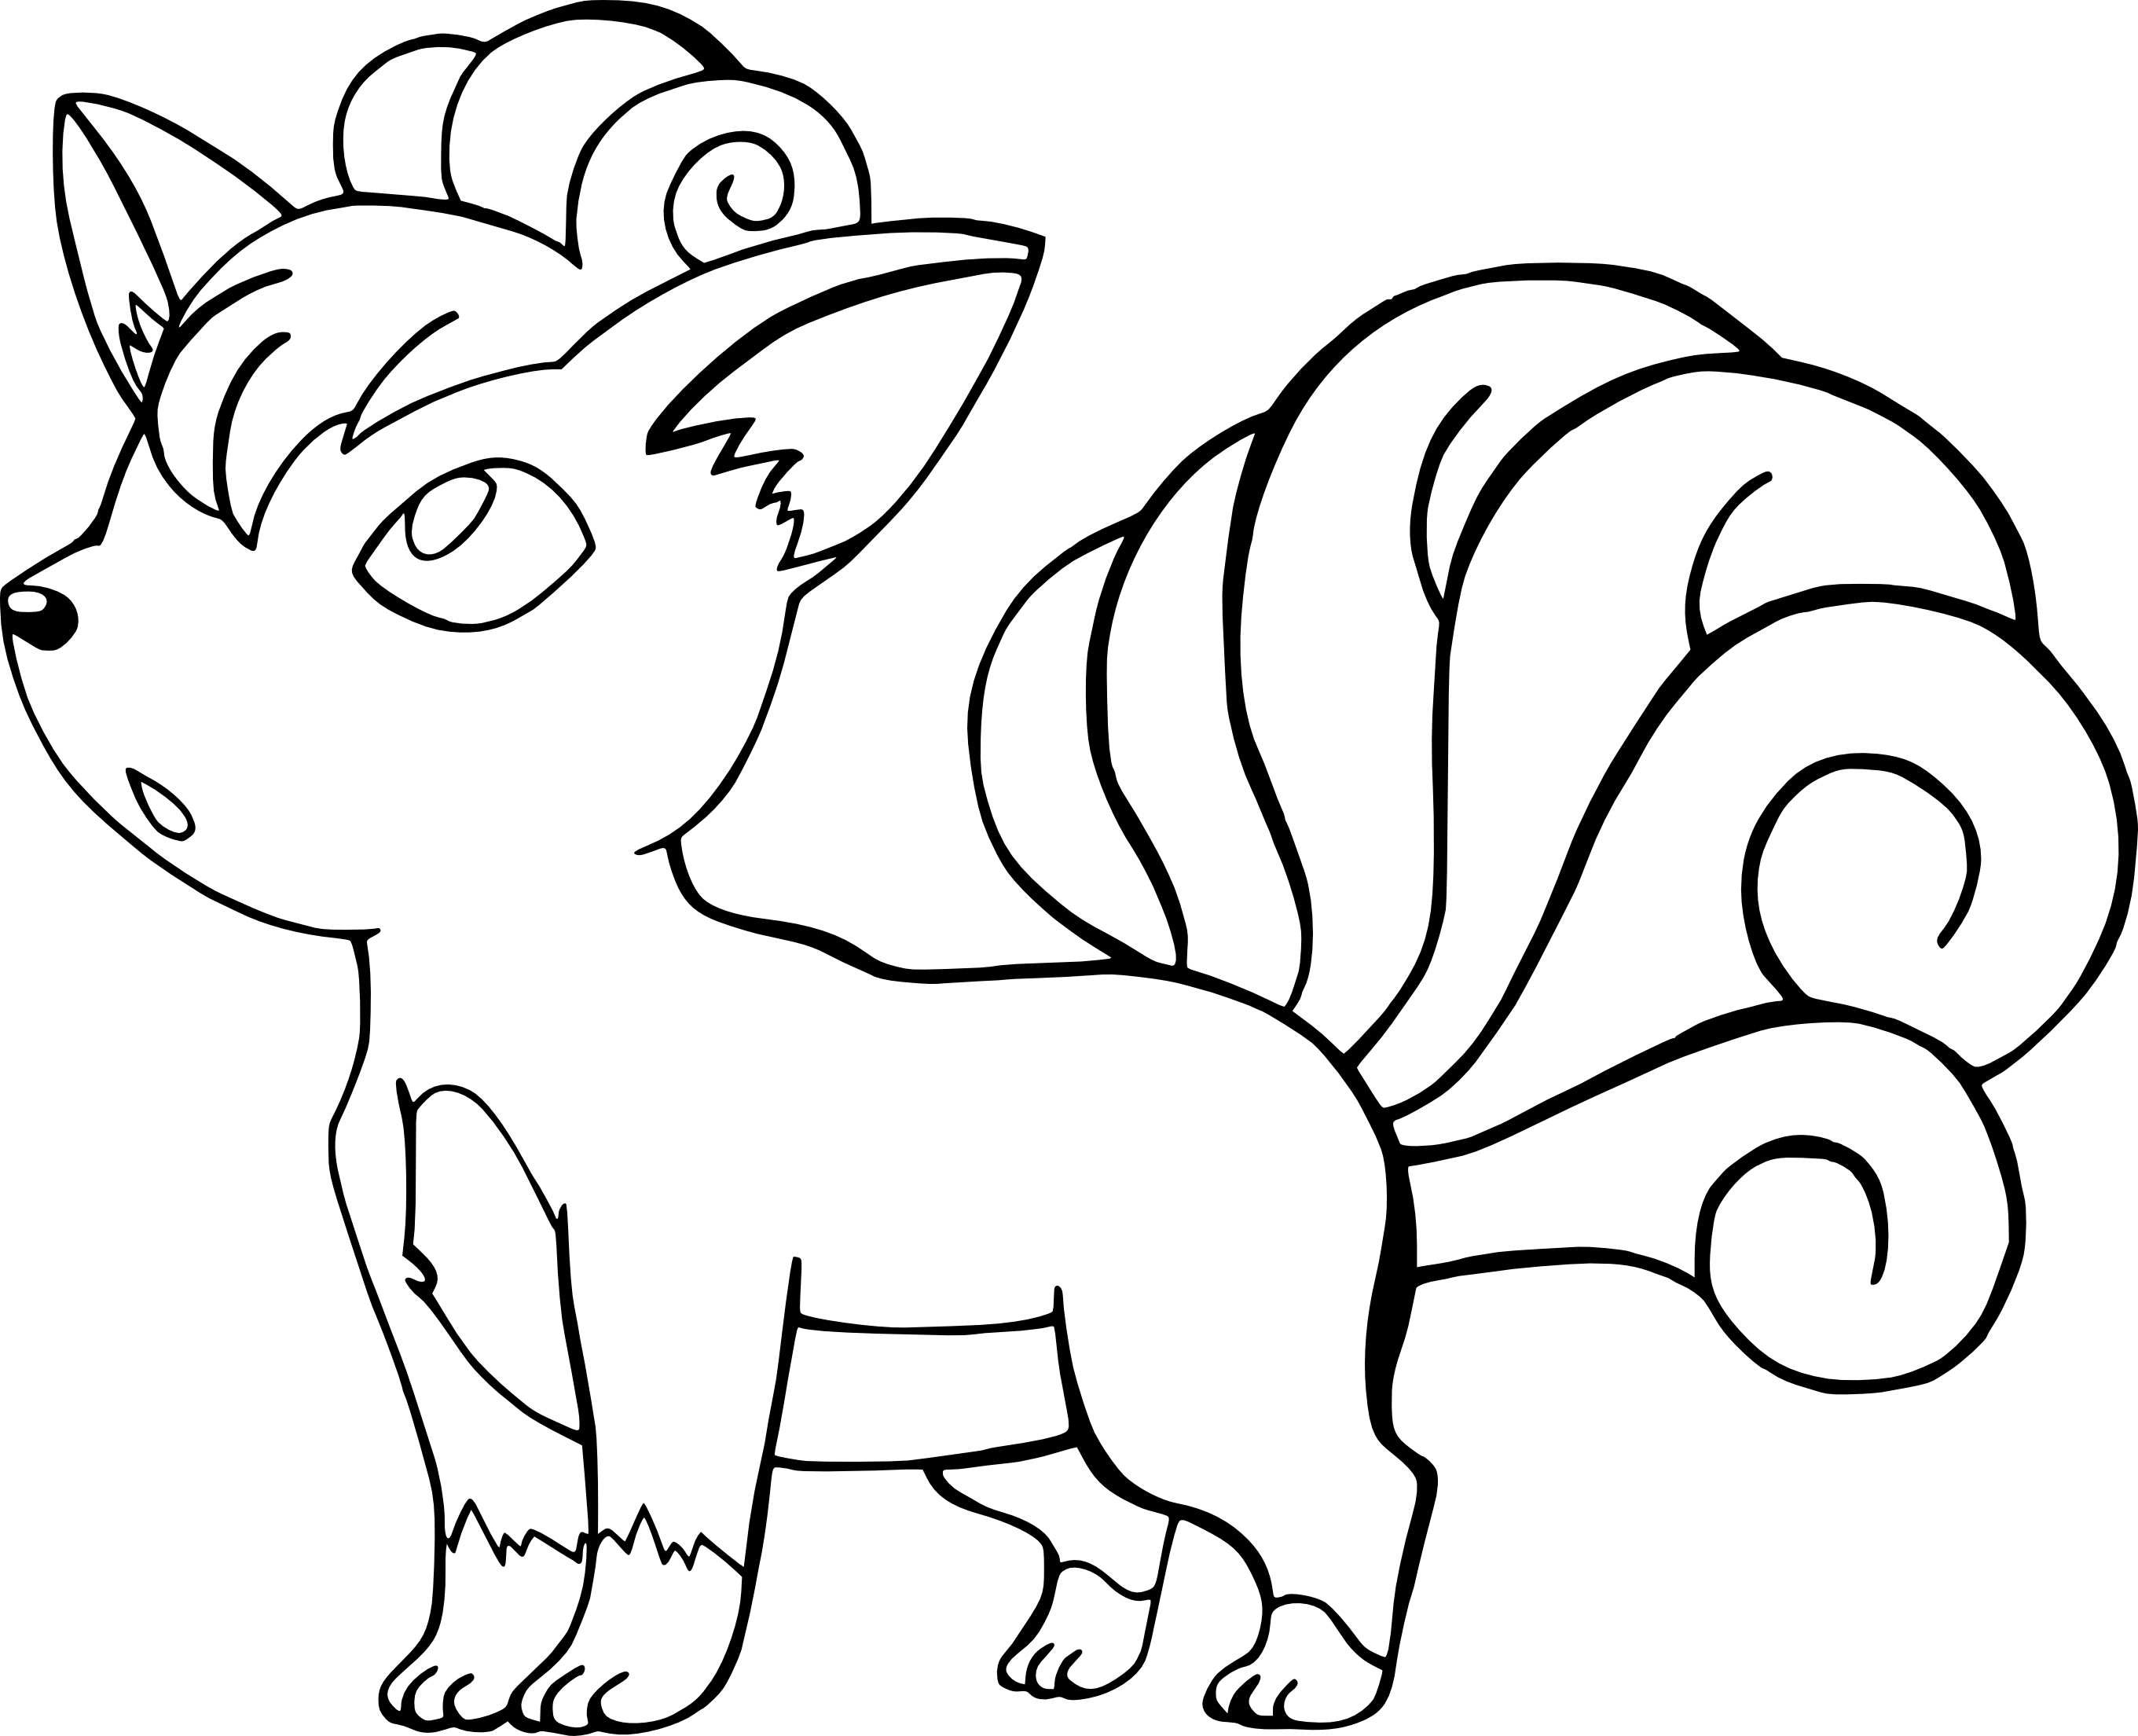 2721x2209 Coloring Page Vulpix In The Alola Region Ice Type Pokemon